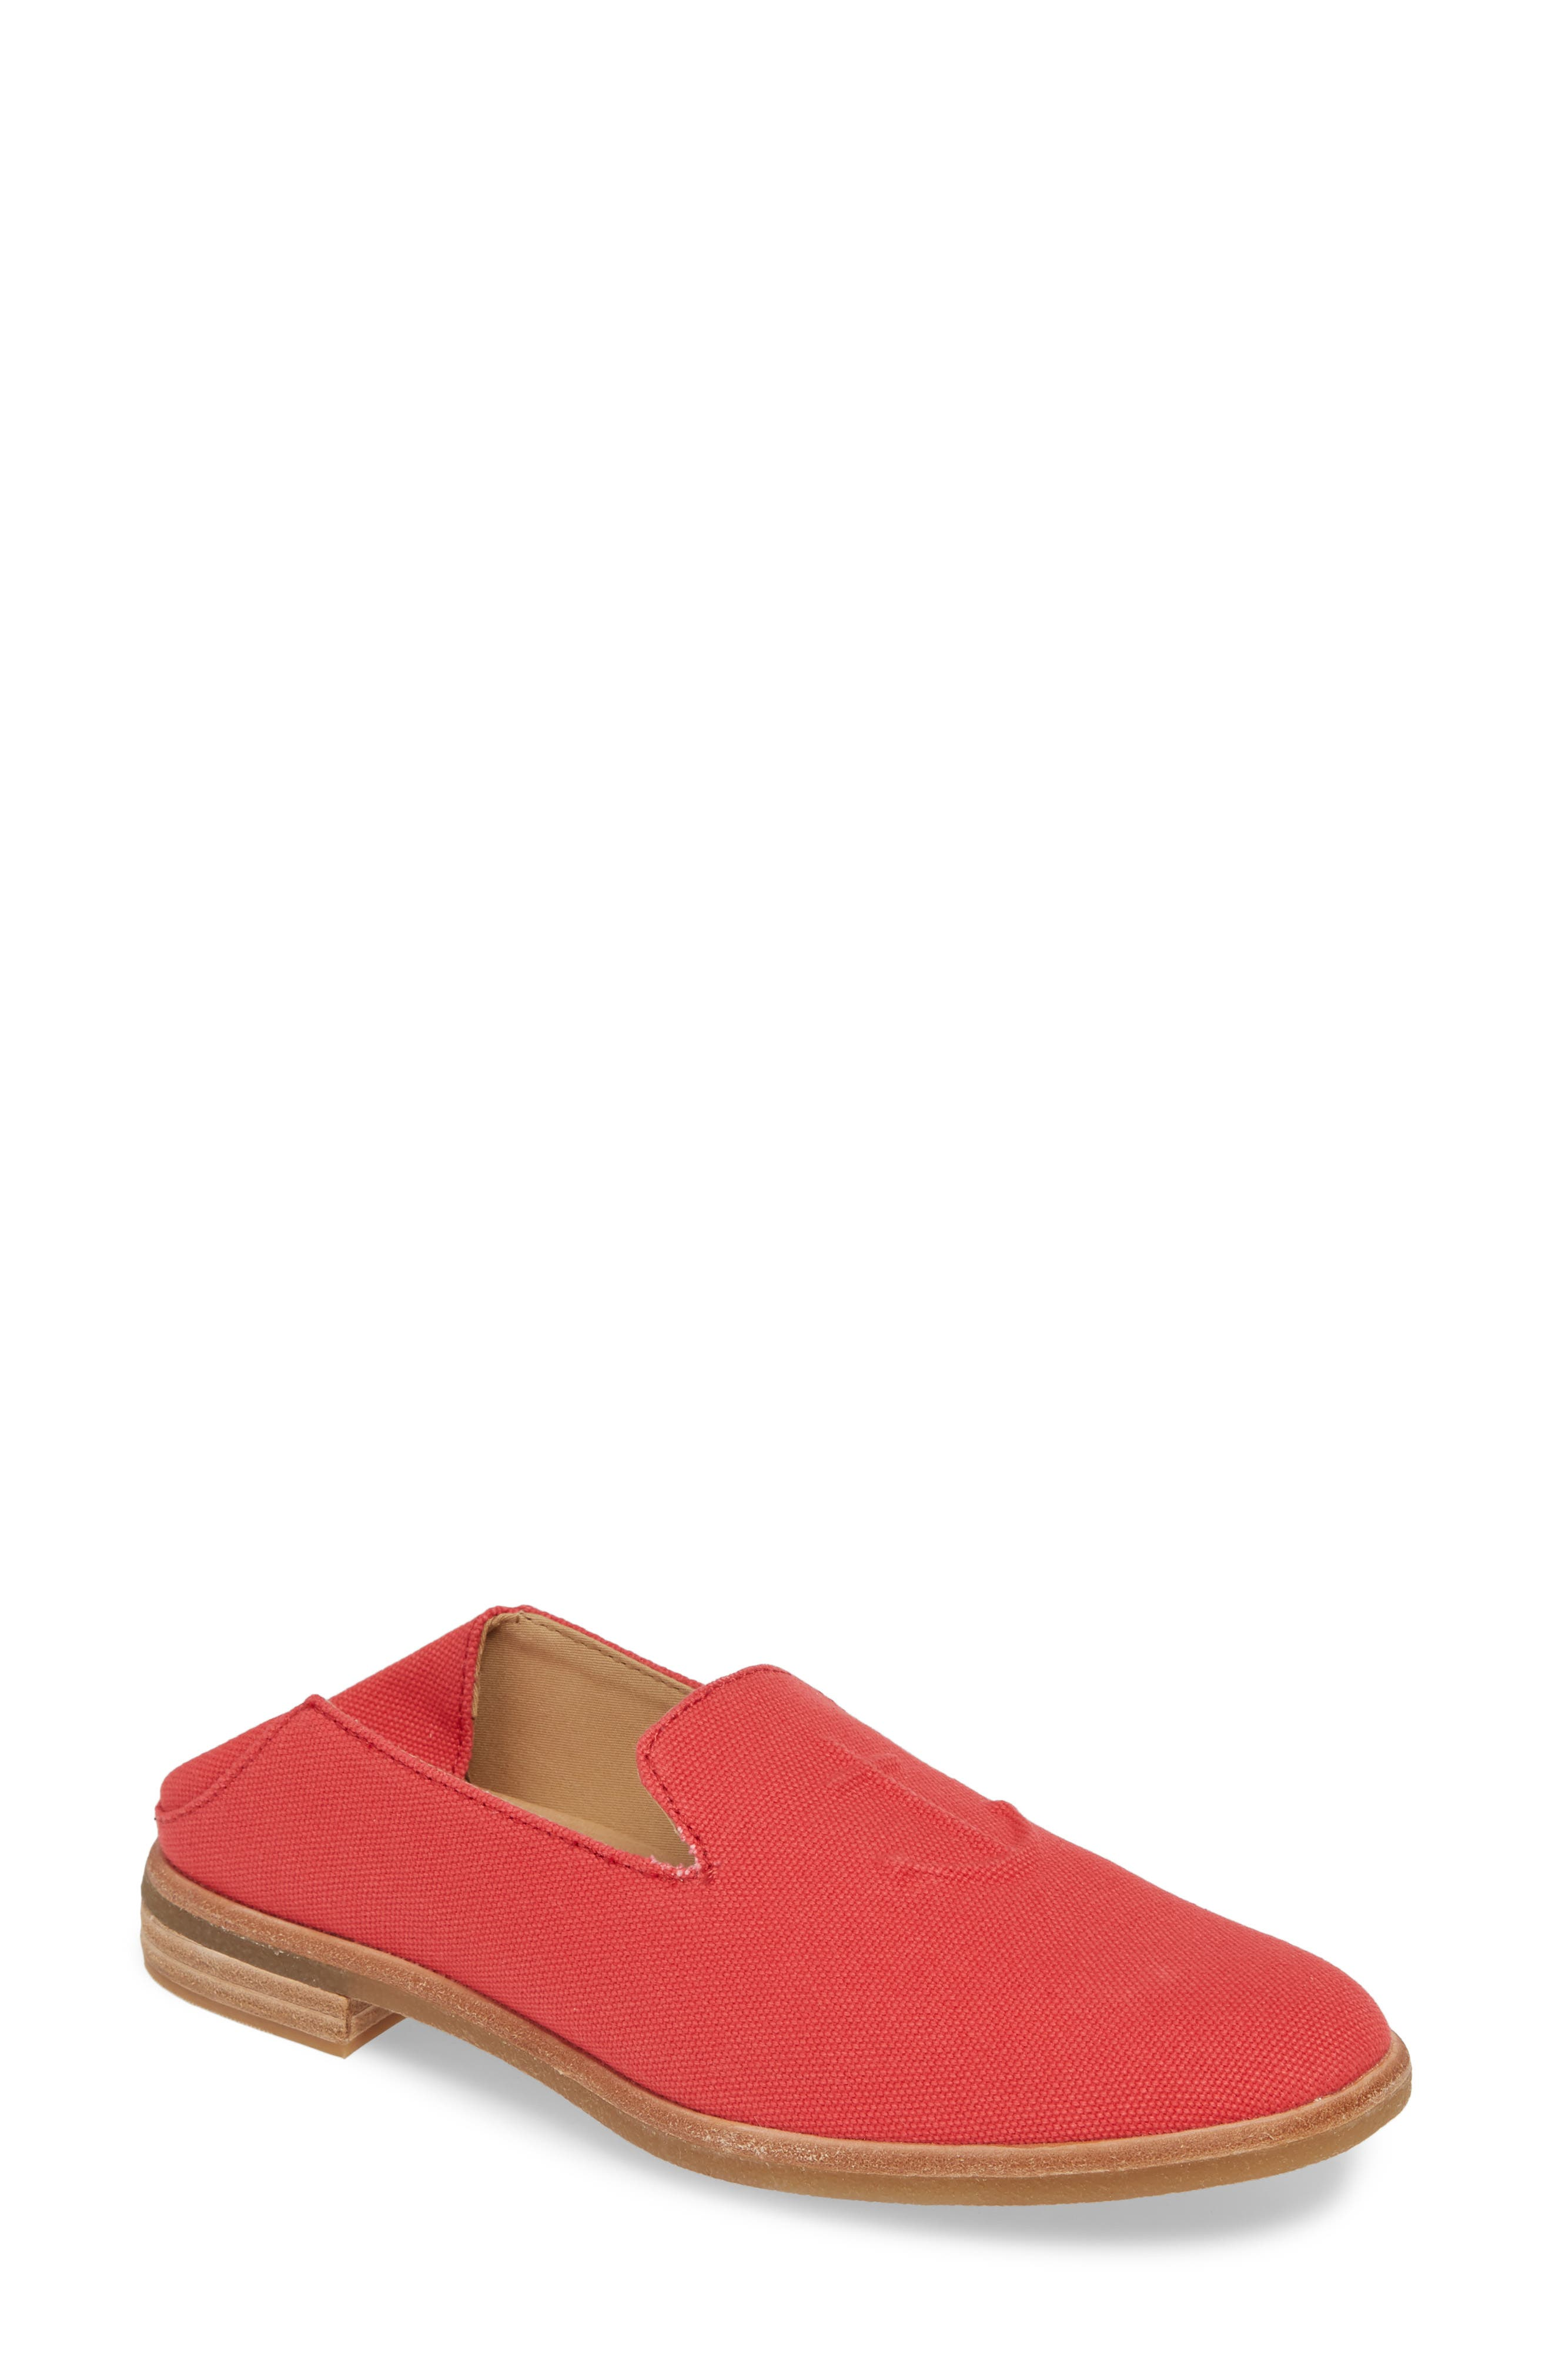 SPERRY, Seaport Levy Flat, Main thumbnail 1, color, RED CANVAS